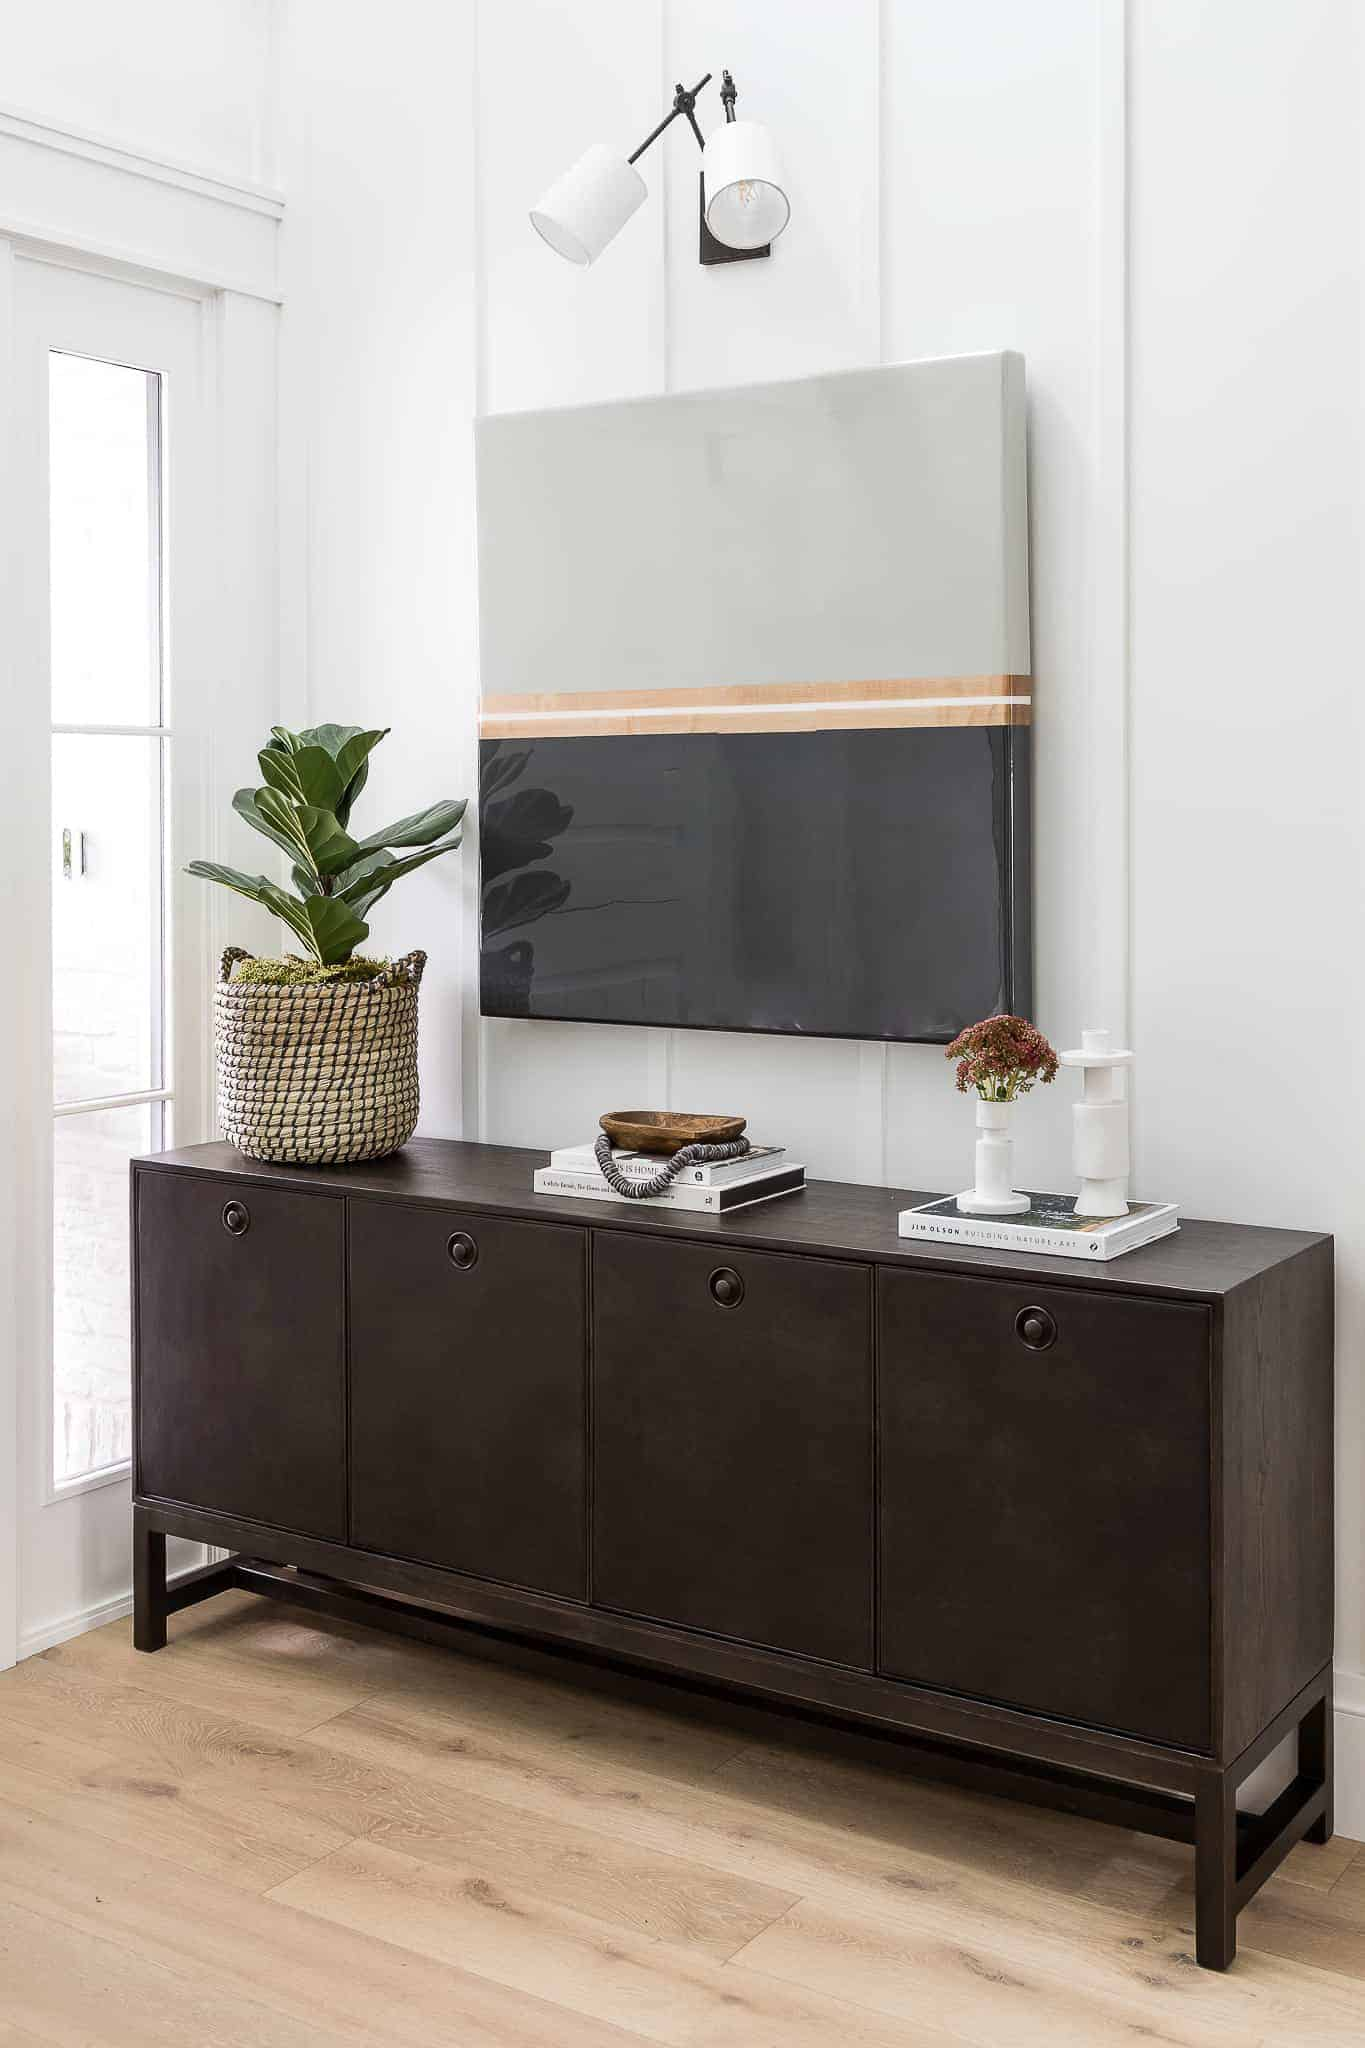 Dark Console Table With Oversized Art - Mindy Gayer Design Co.